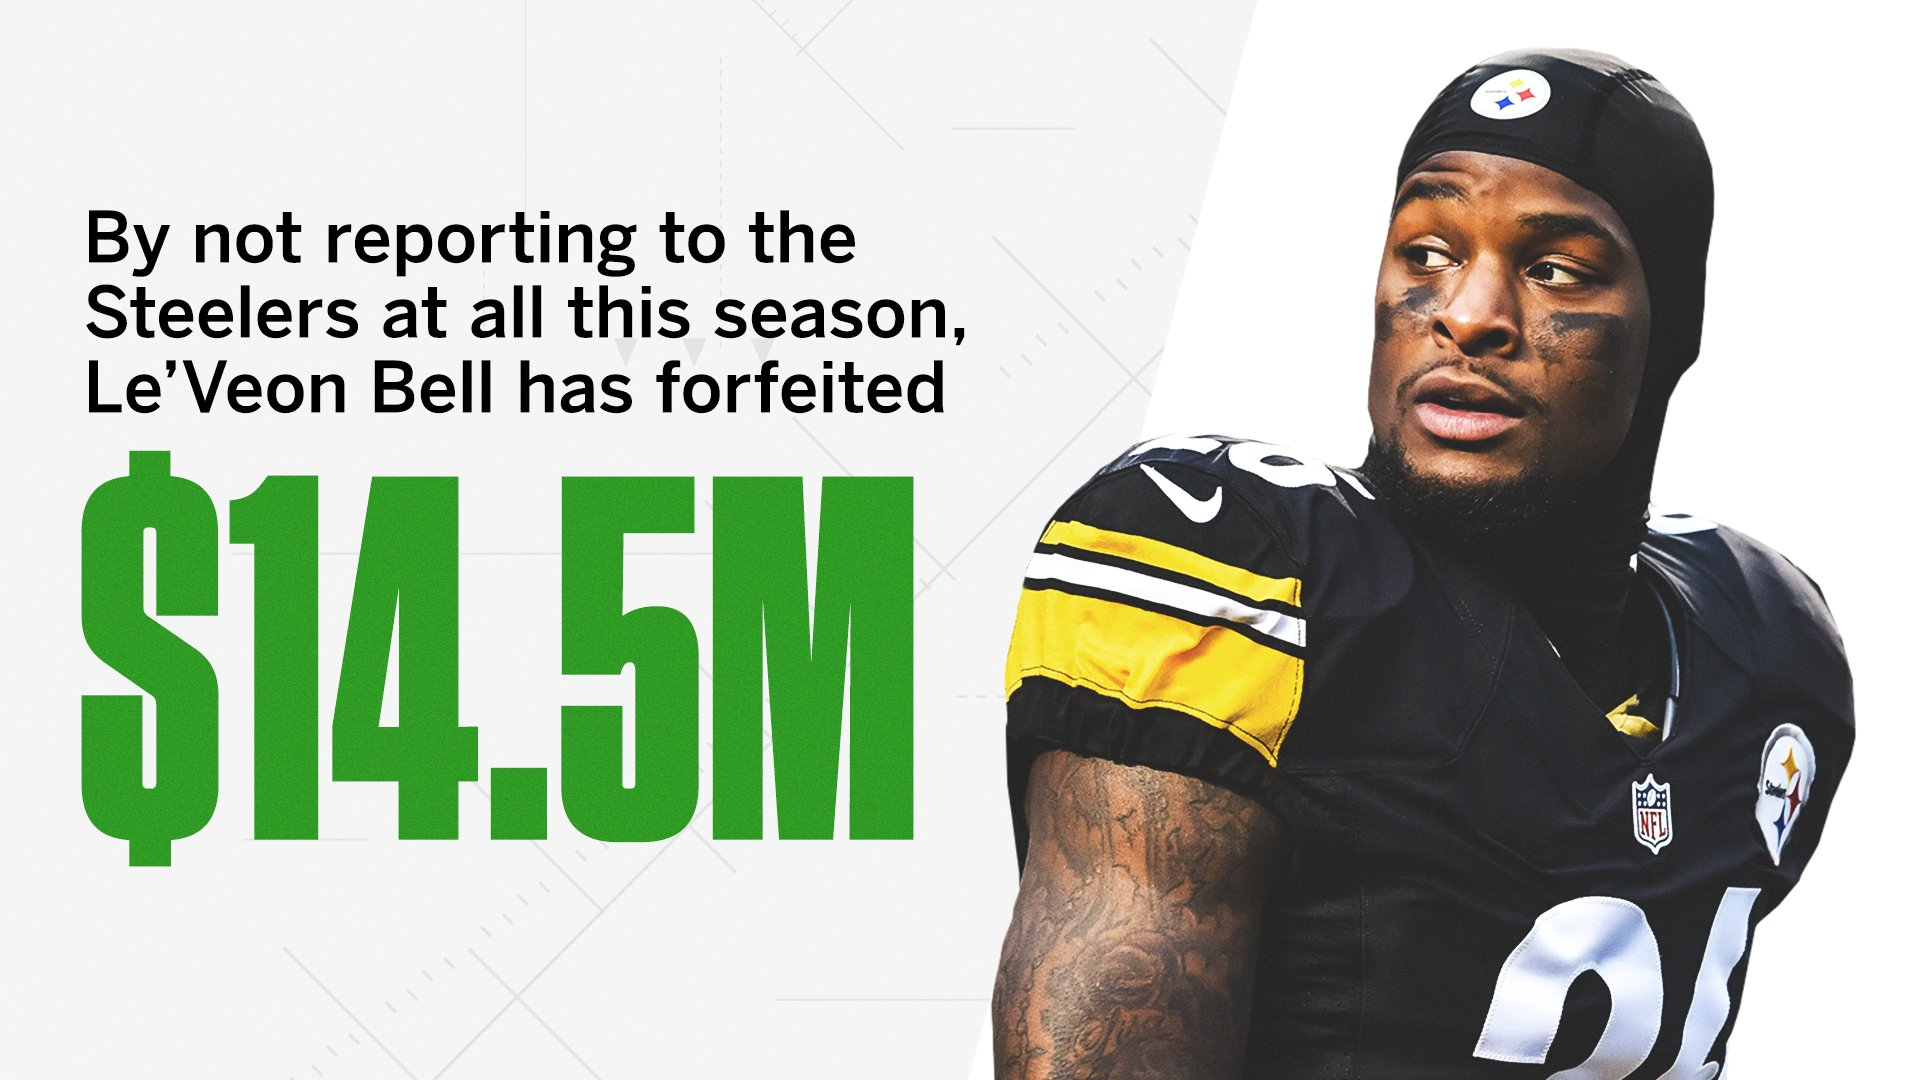 Le'Veon Bell is now looking to stay healthy and strike a mega deal this offseason. https://t.co/OERfEjviDz